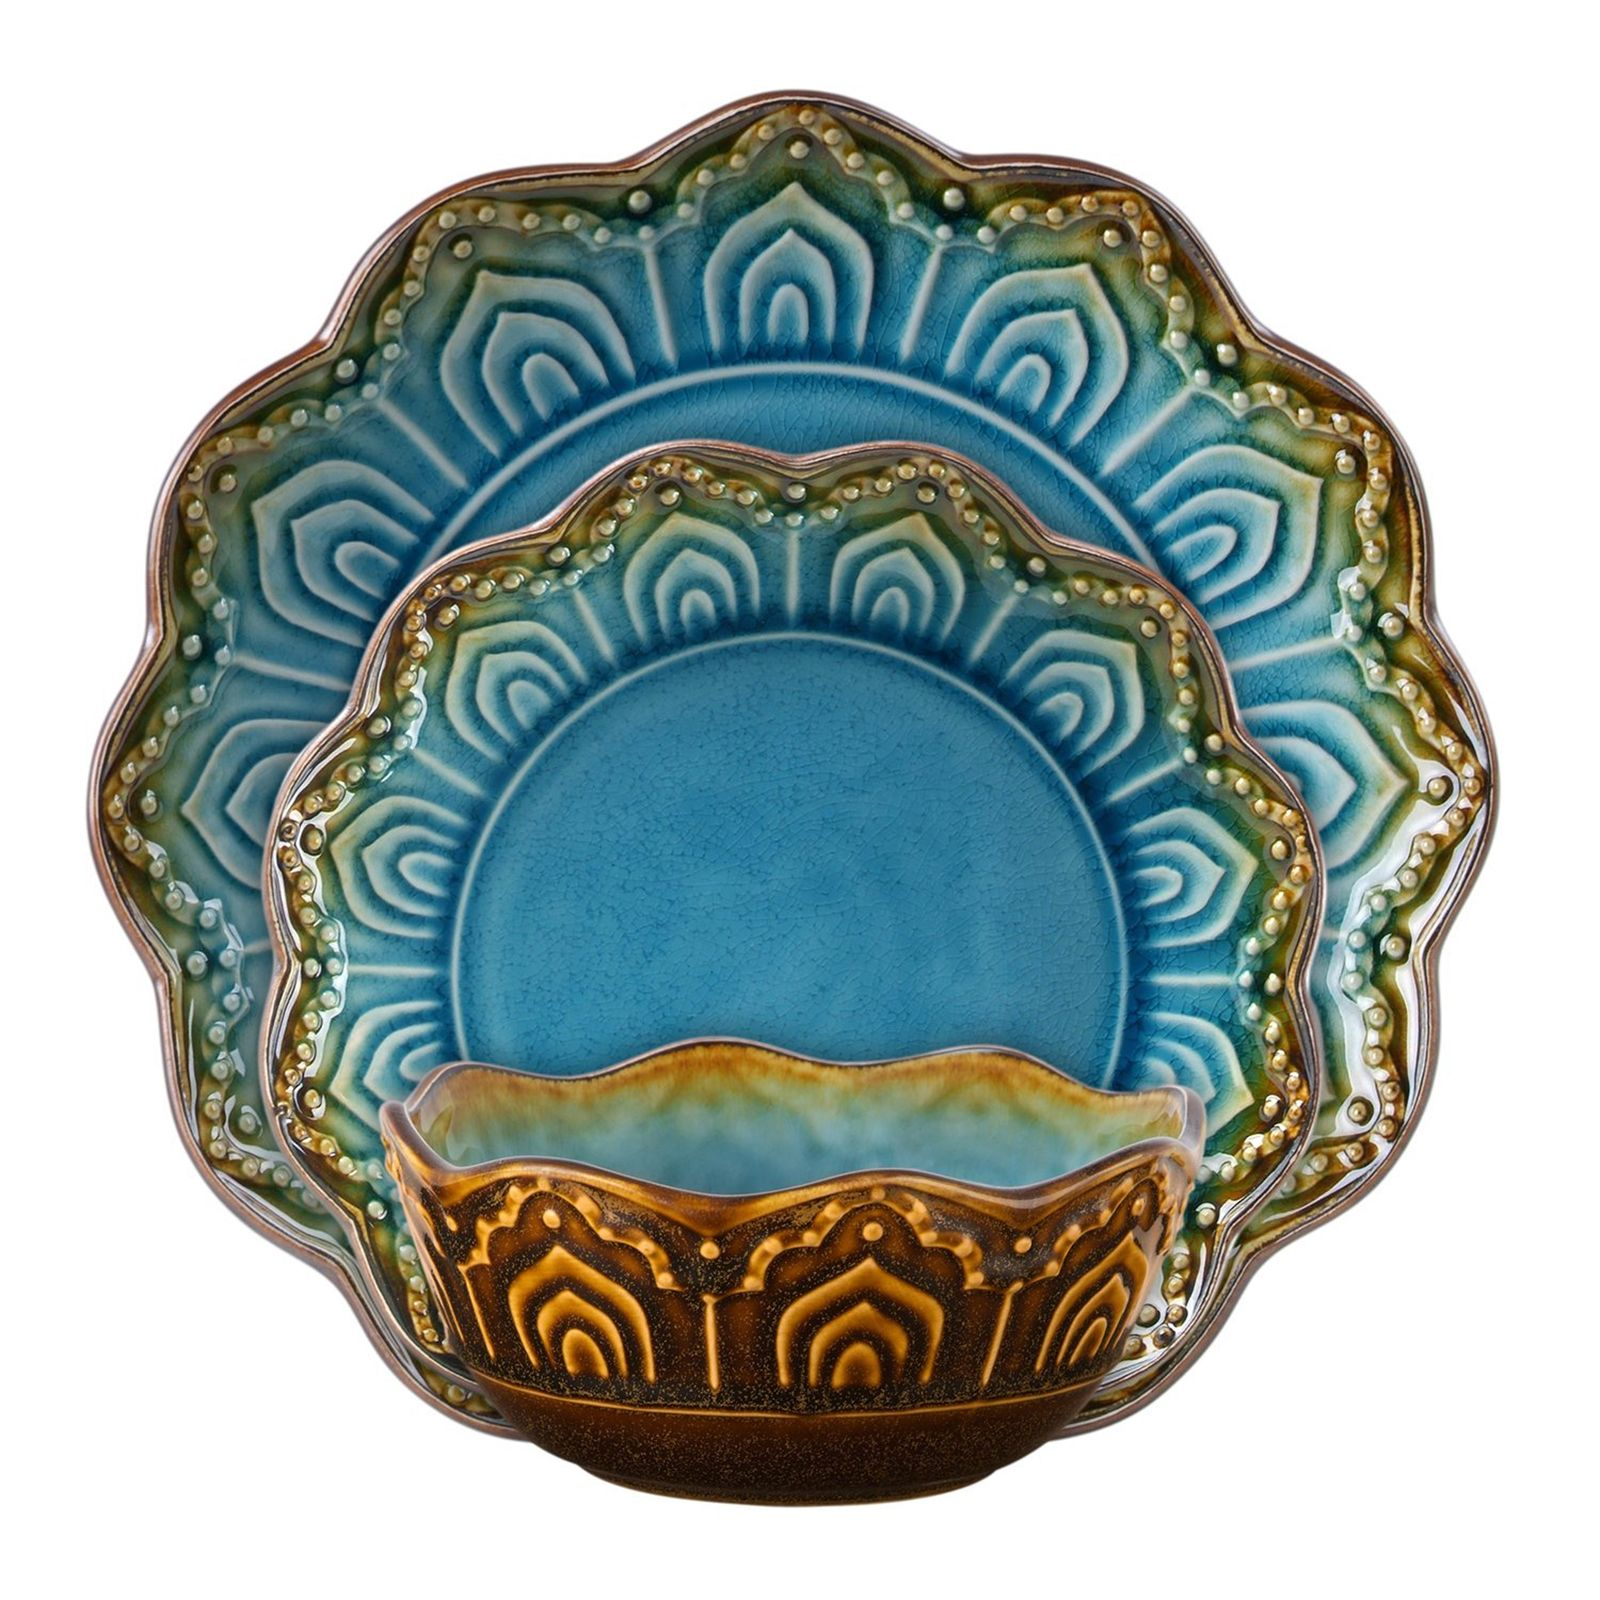 Gibson Elite Couture Maison Morocco 16 pc Dinnerware Set Turquoise - Gifts - Giftable Items - All Giftable Items  sc 1 st  Pinterest & Gibson Elite Couture Maison Morocco 16 pc Dinnerware Set Turquoise ...